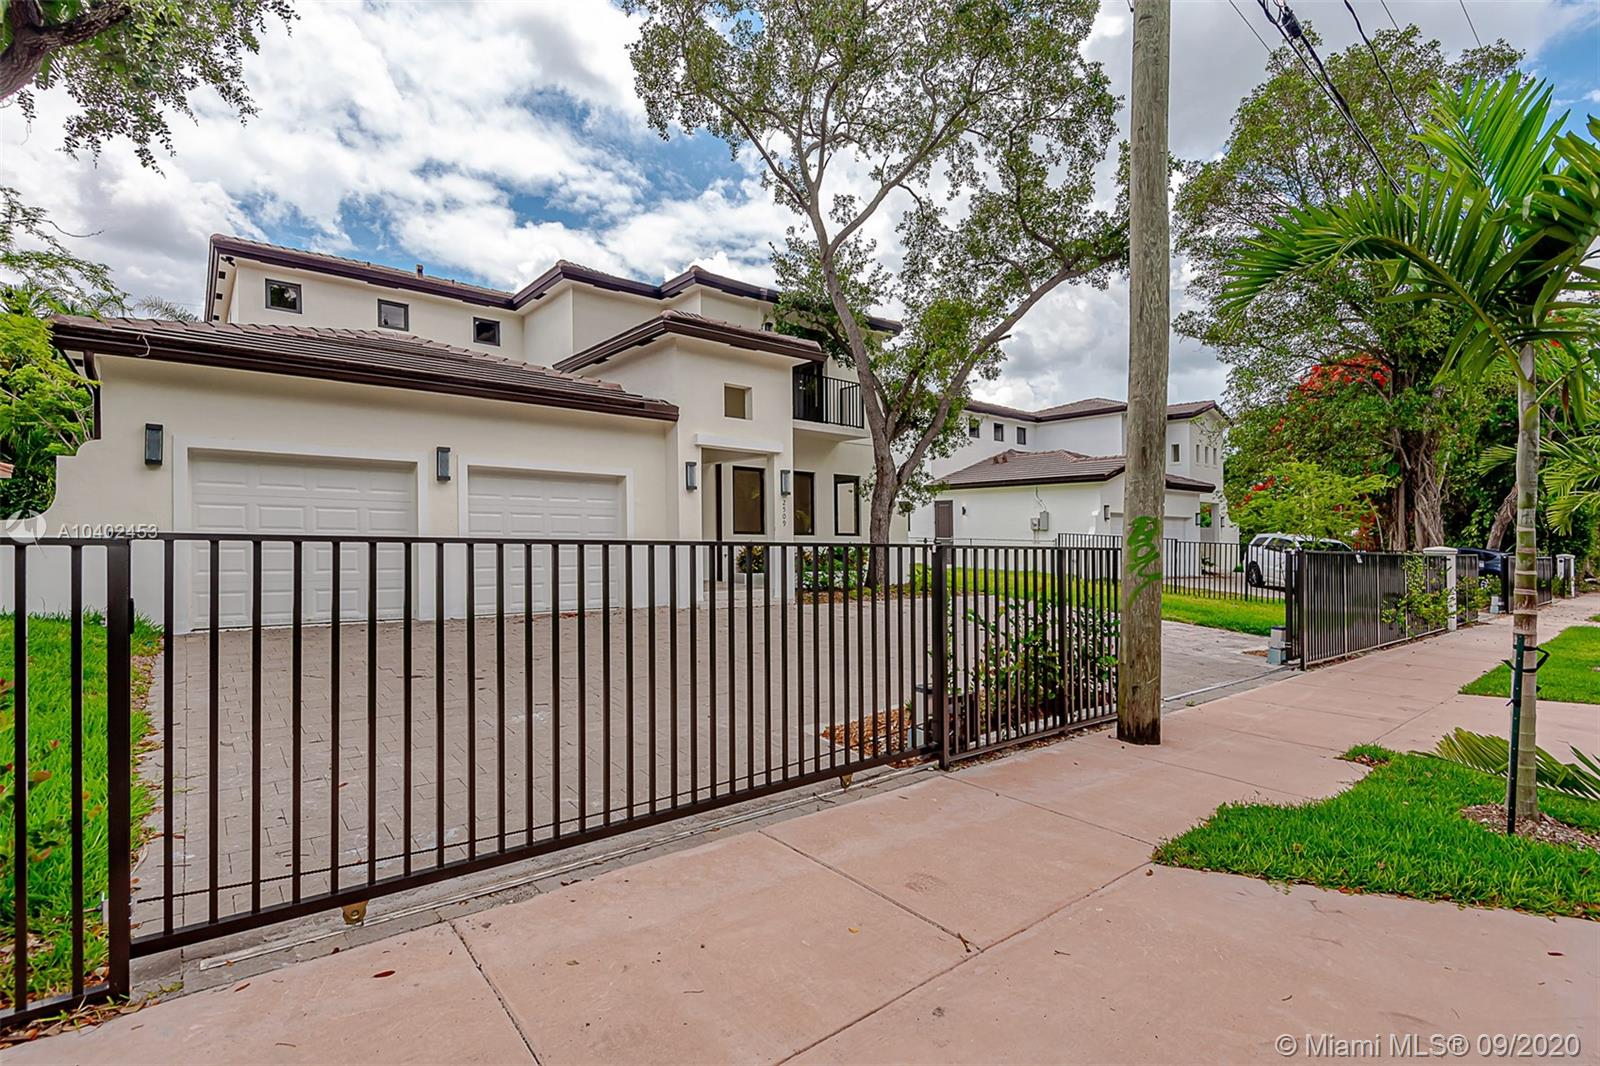 2509 Red Road, Coral Gables, Florida 33134, 4 Bedrooms Bedrooms, ,4 BathroomsBathrooms,Residential,For Sale,2509 Red Road,A10402453